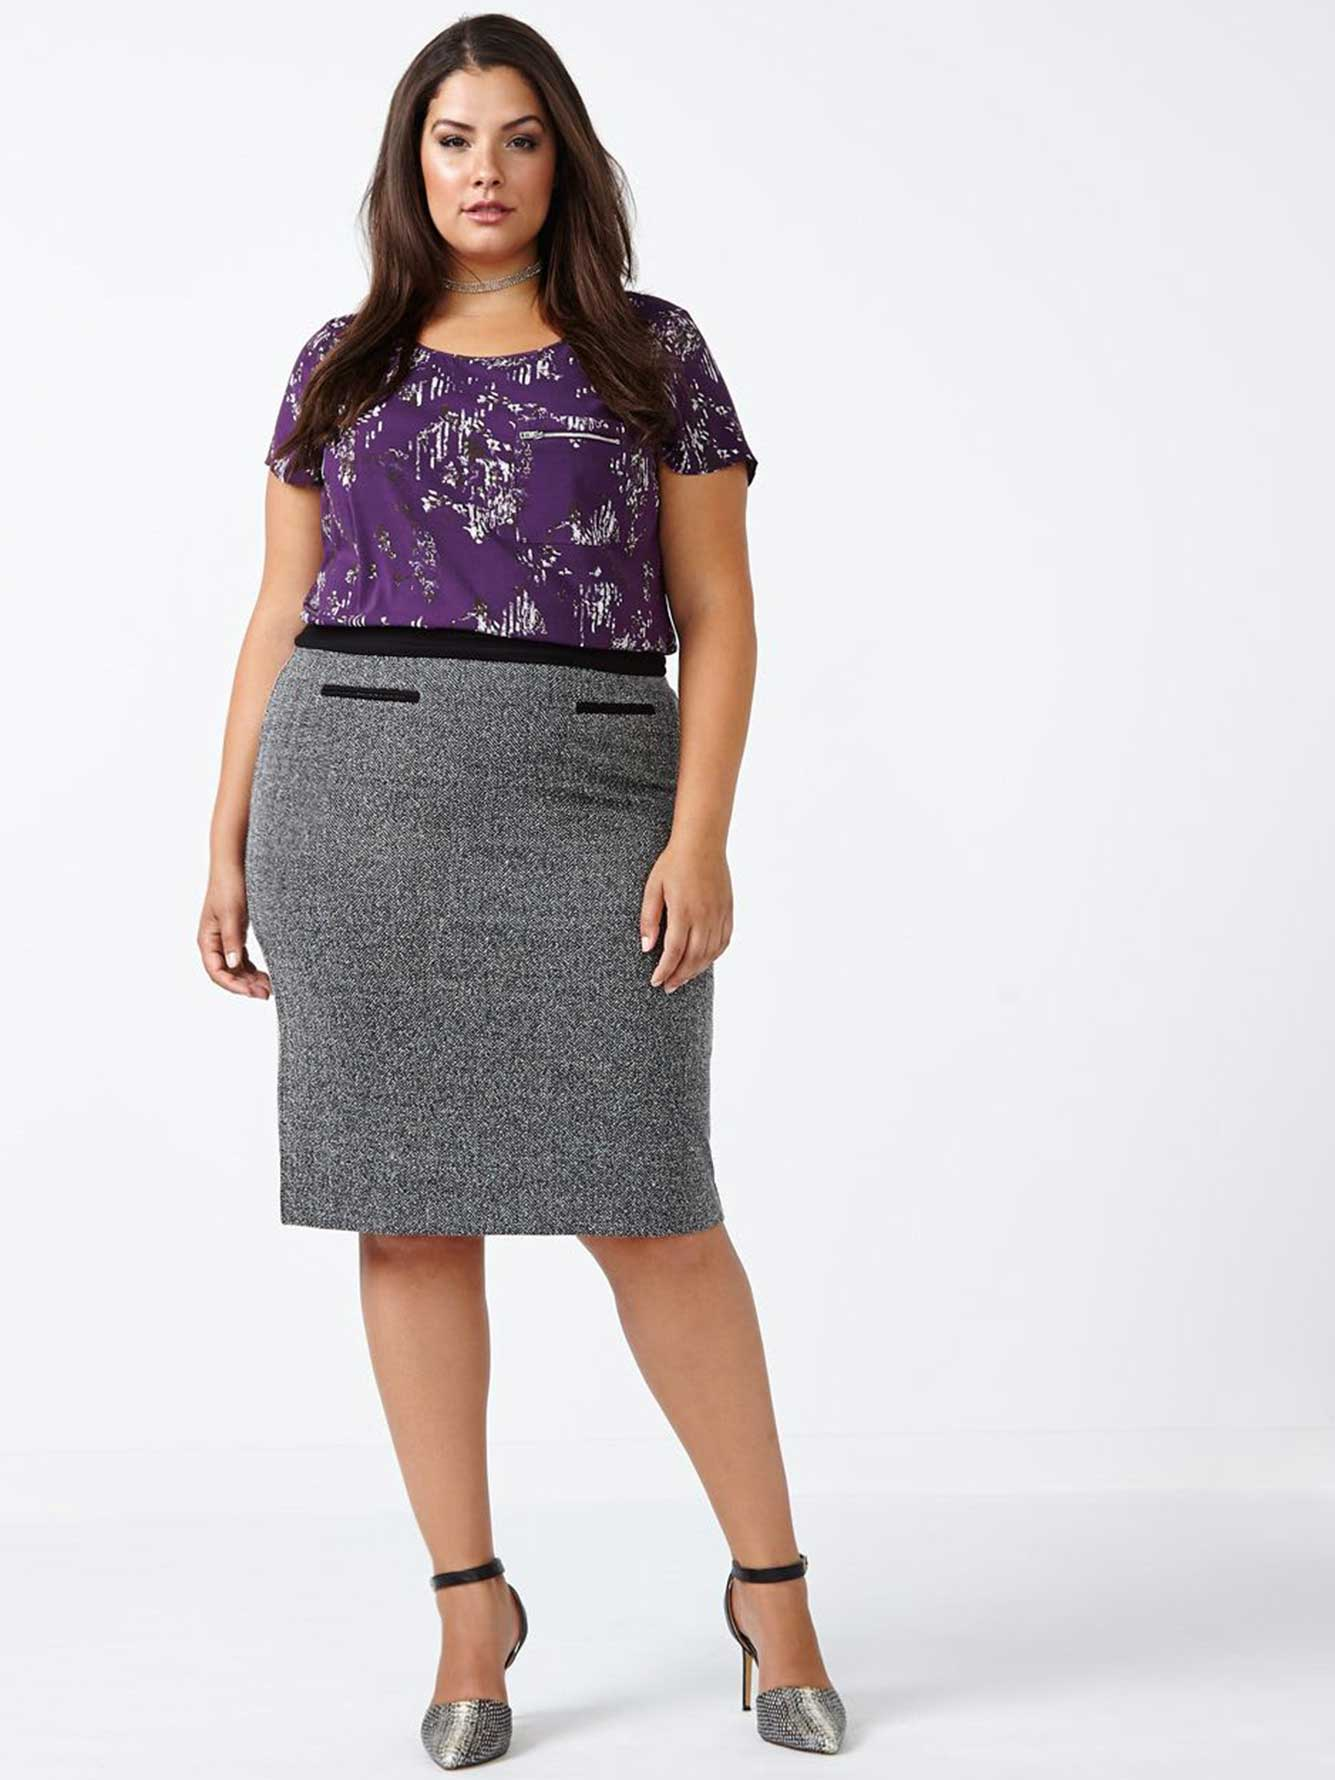 Pattern of a universal skirt - a pencil skirt is required in the work of each master